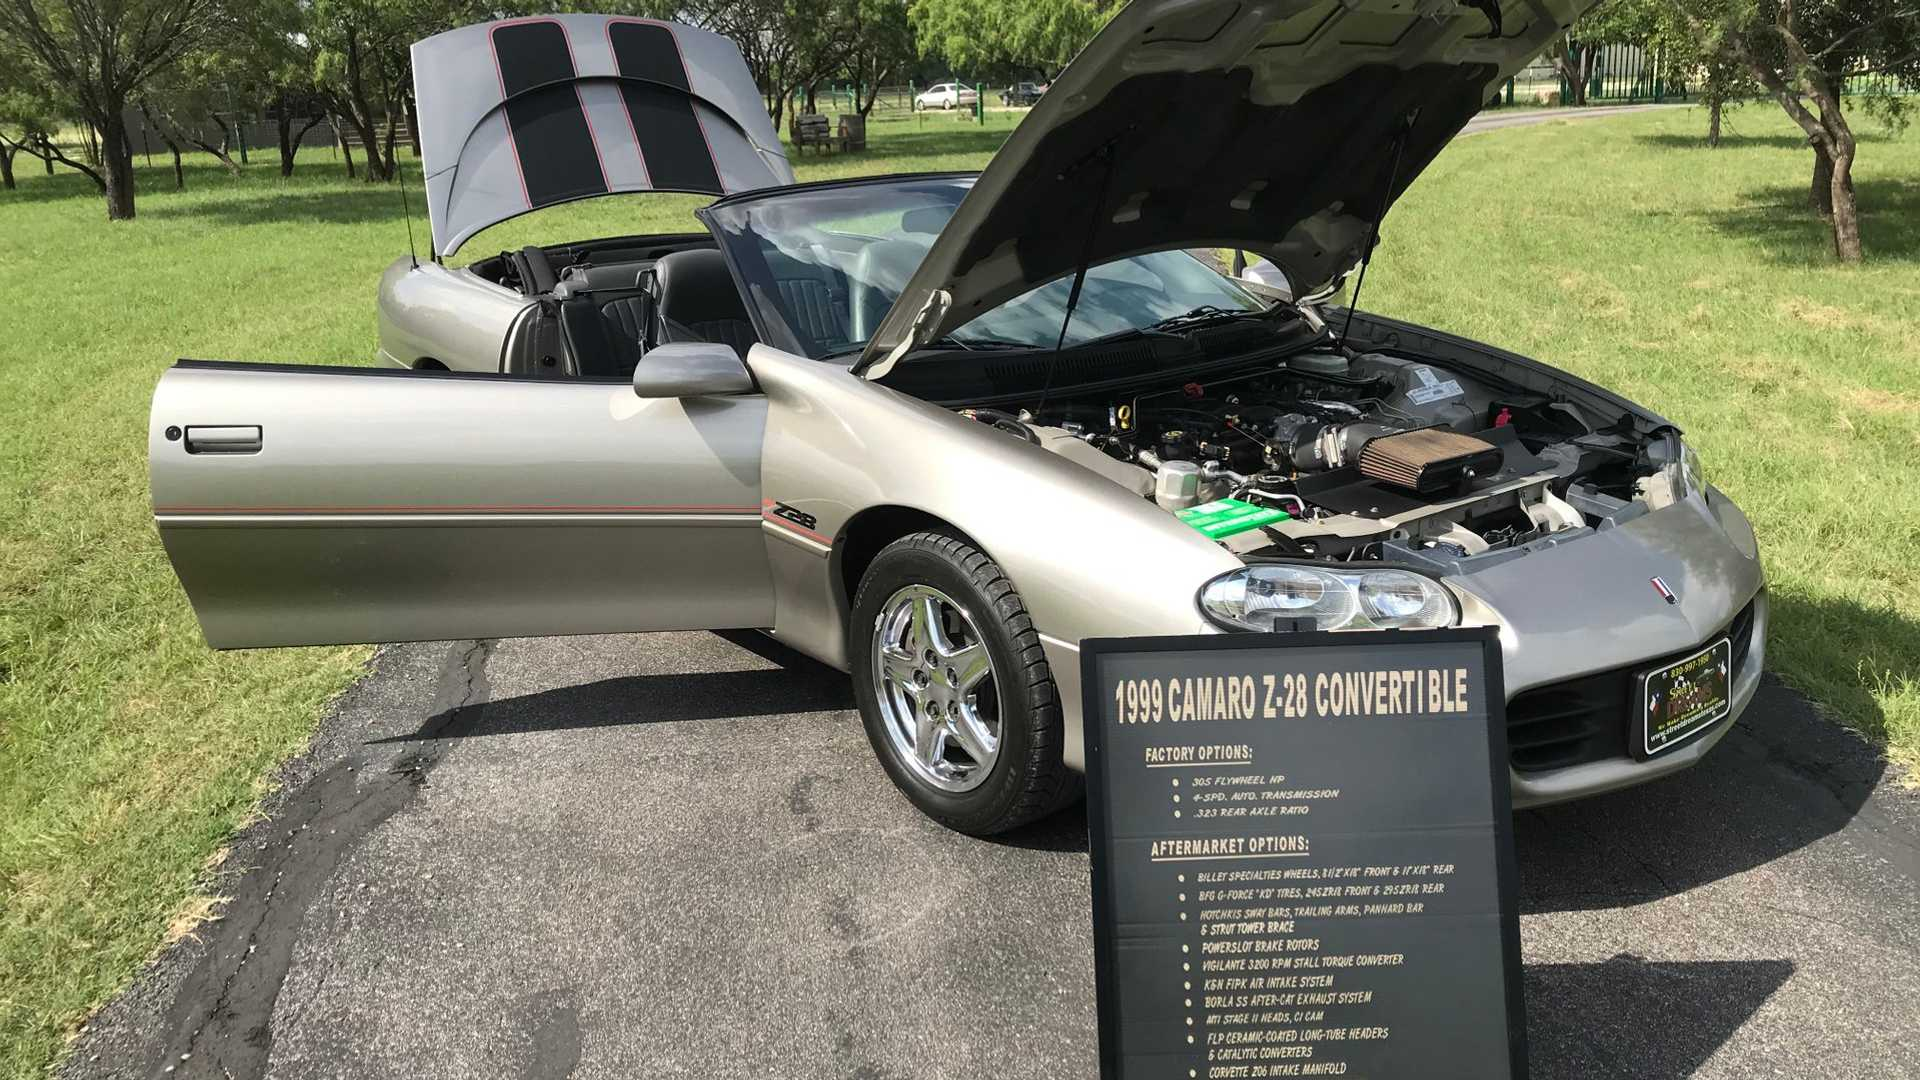 1999 Camaro Z28: A Show Car With High-Performance Upgrades